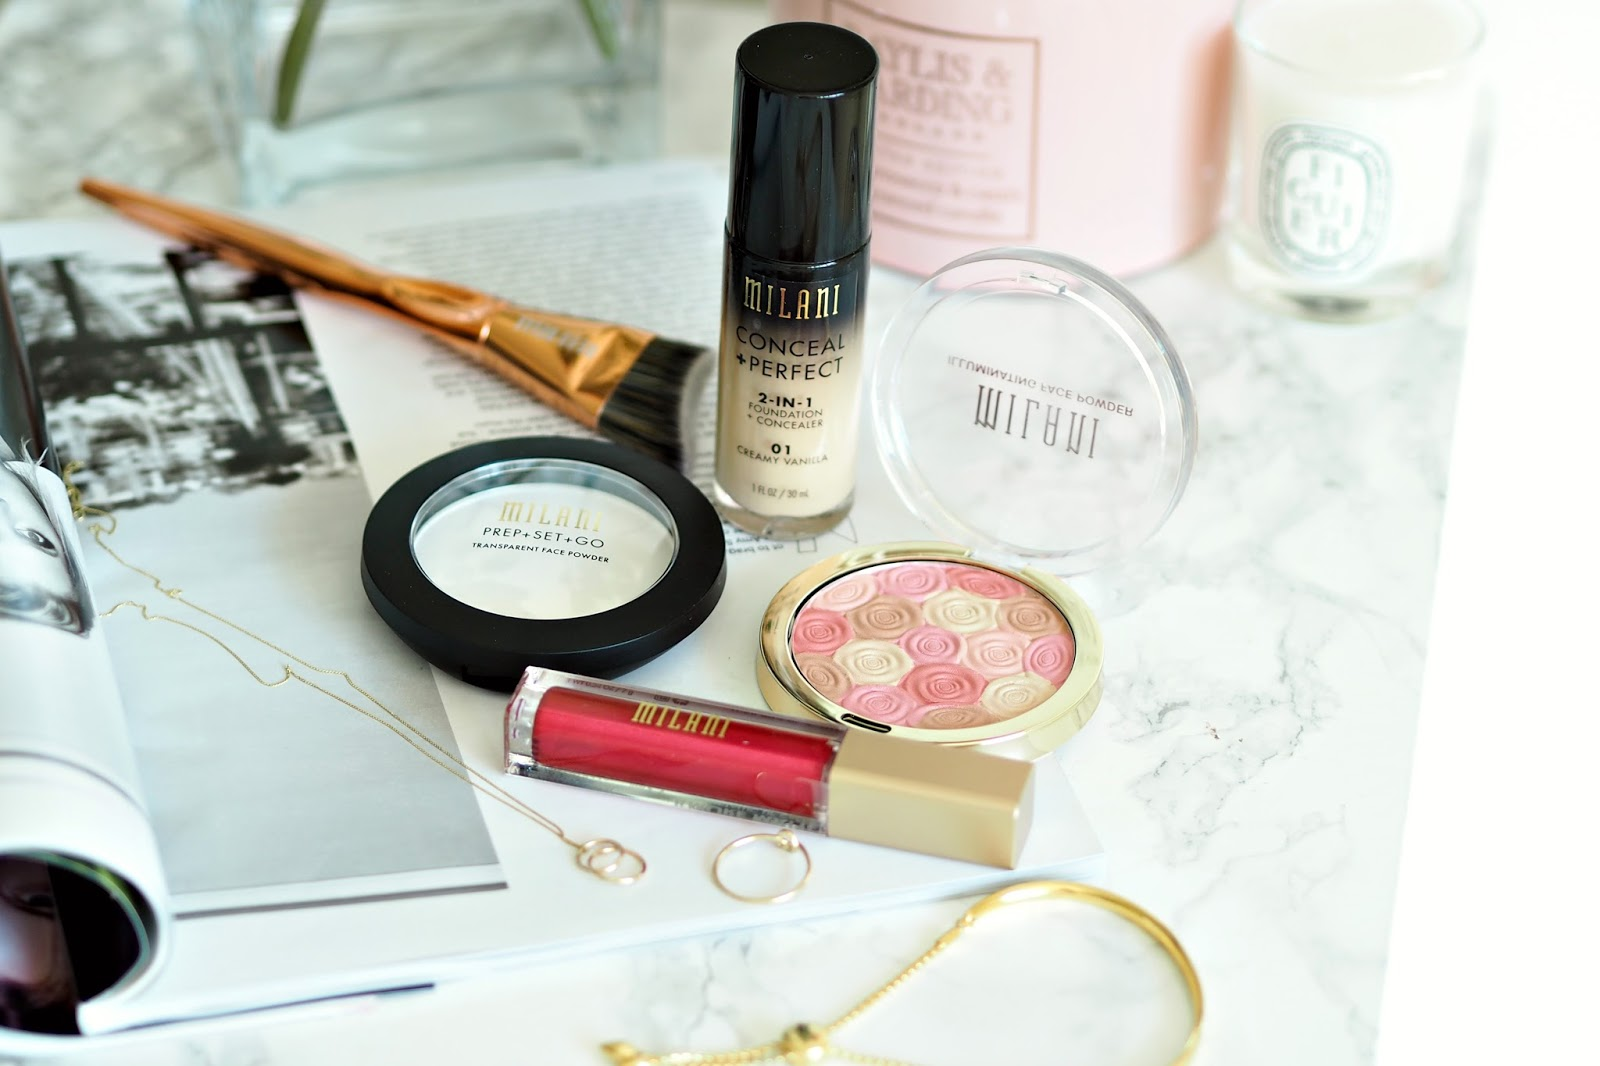 My thoughts on Milani makeup, review